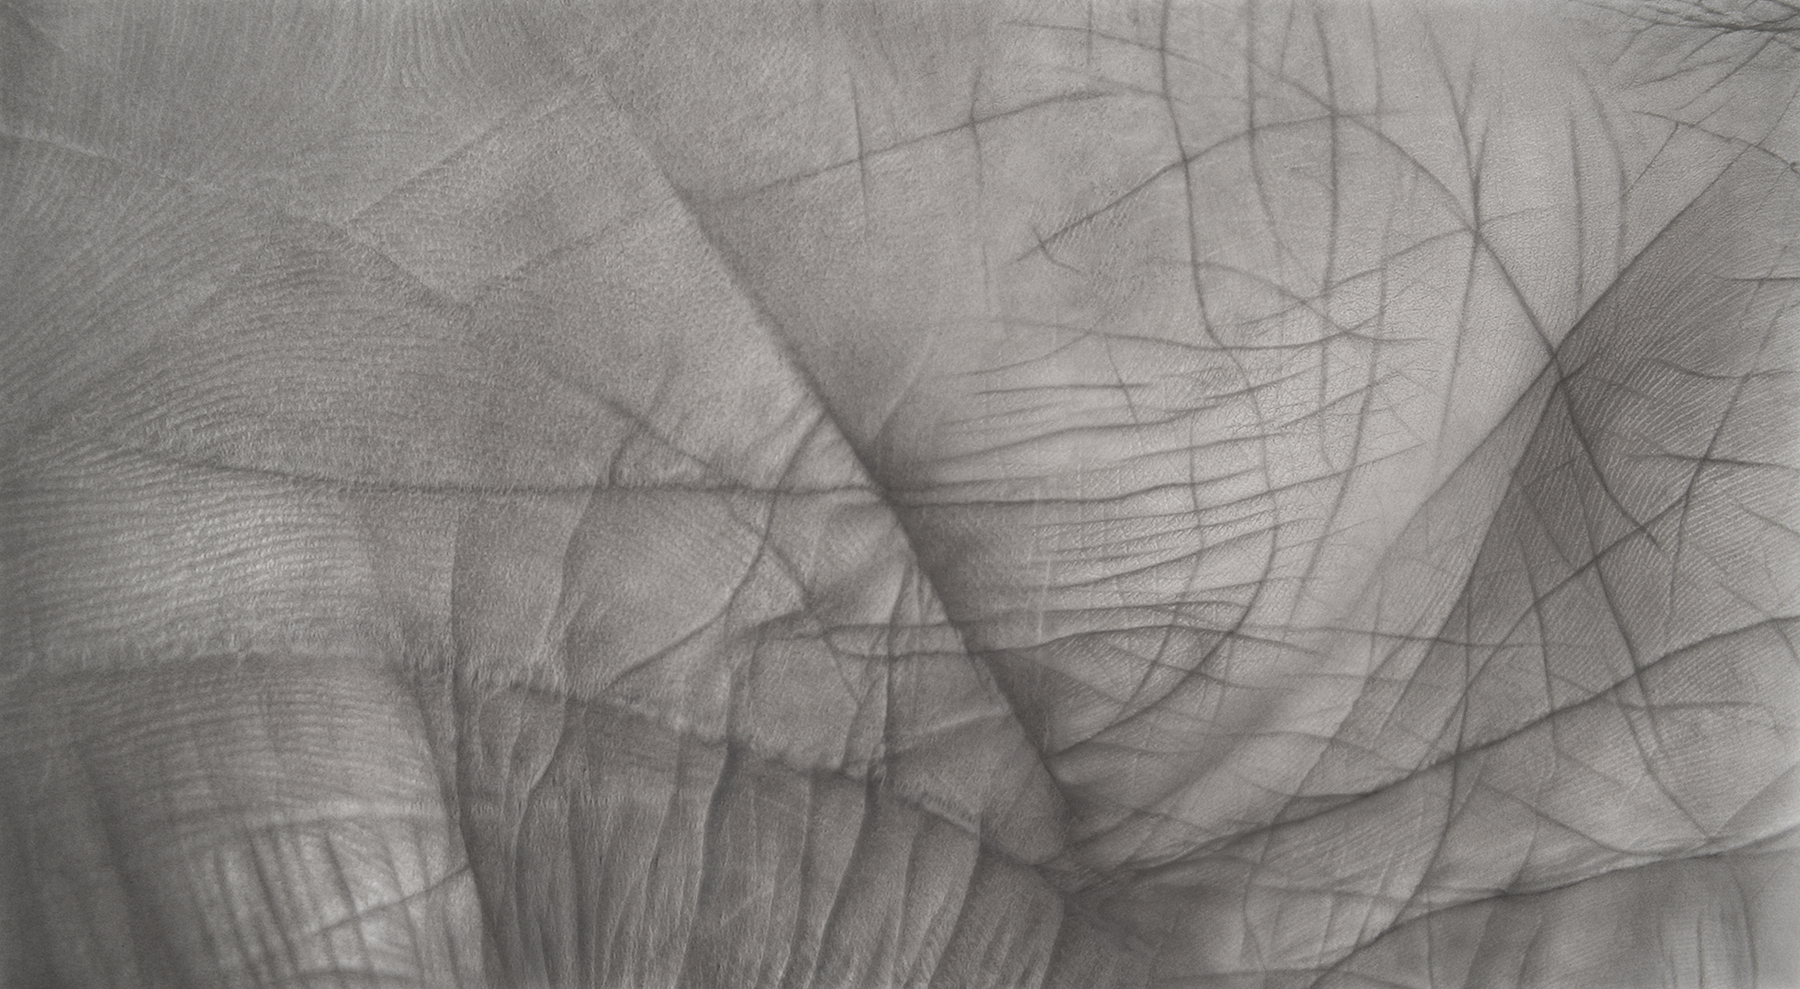 Aevum, 42 x 72, Charcoal and Pastel on digital ghost print